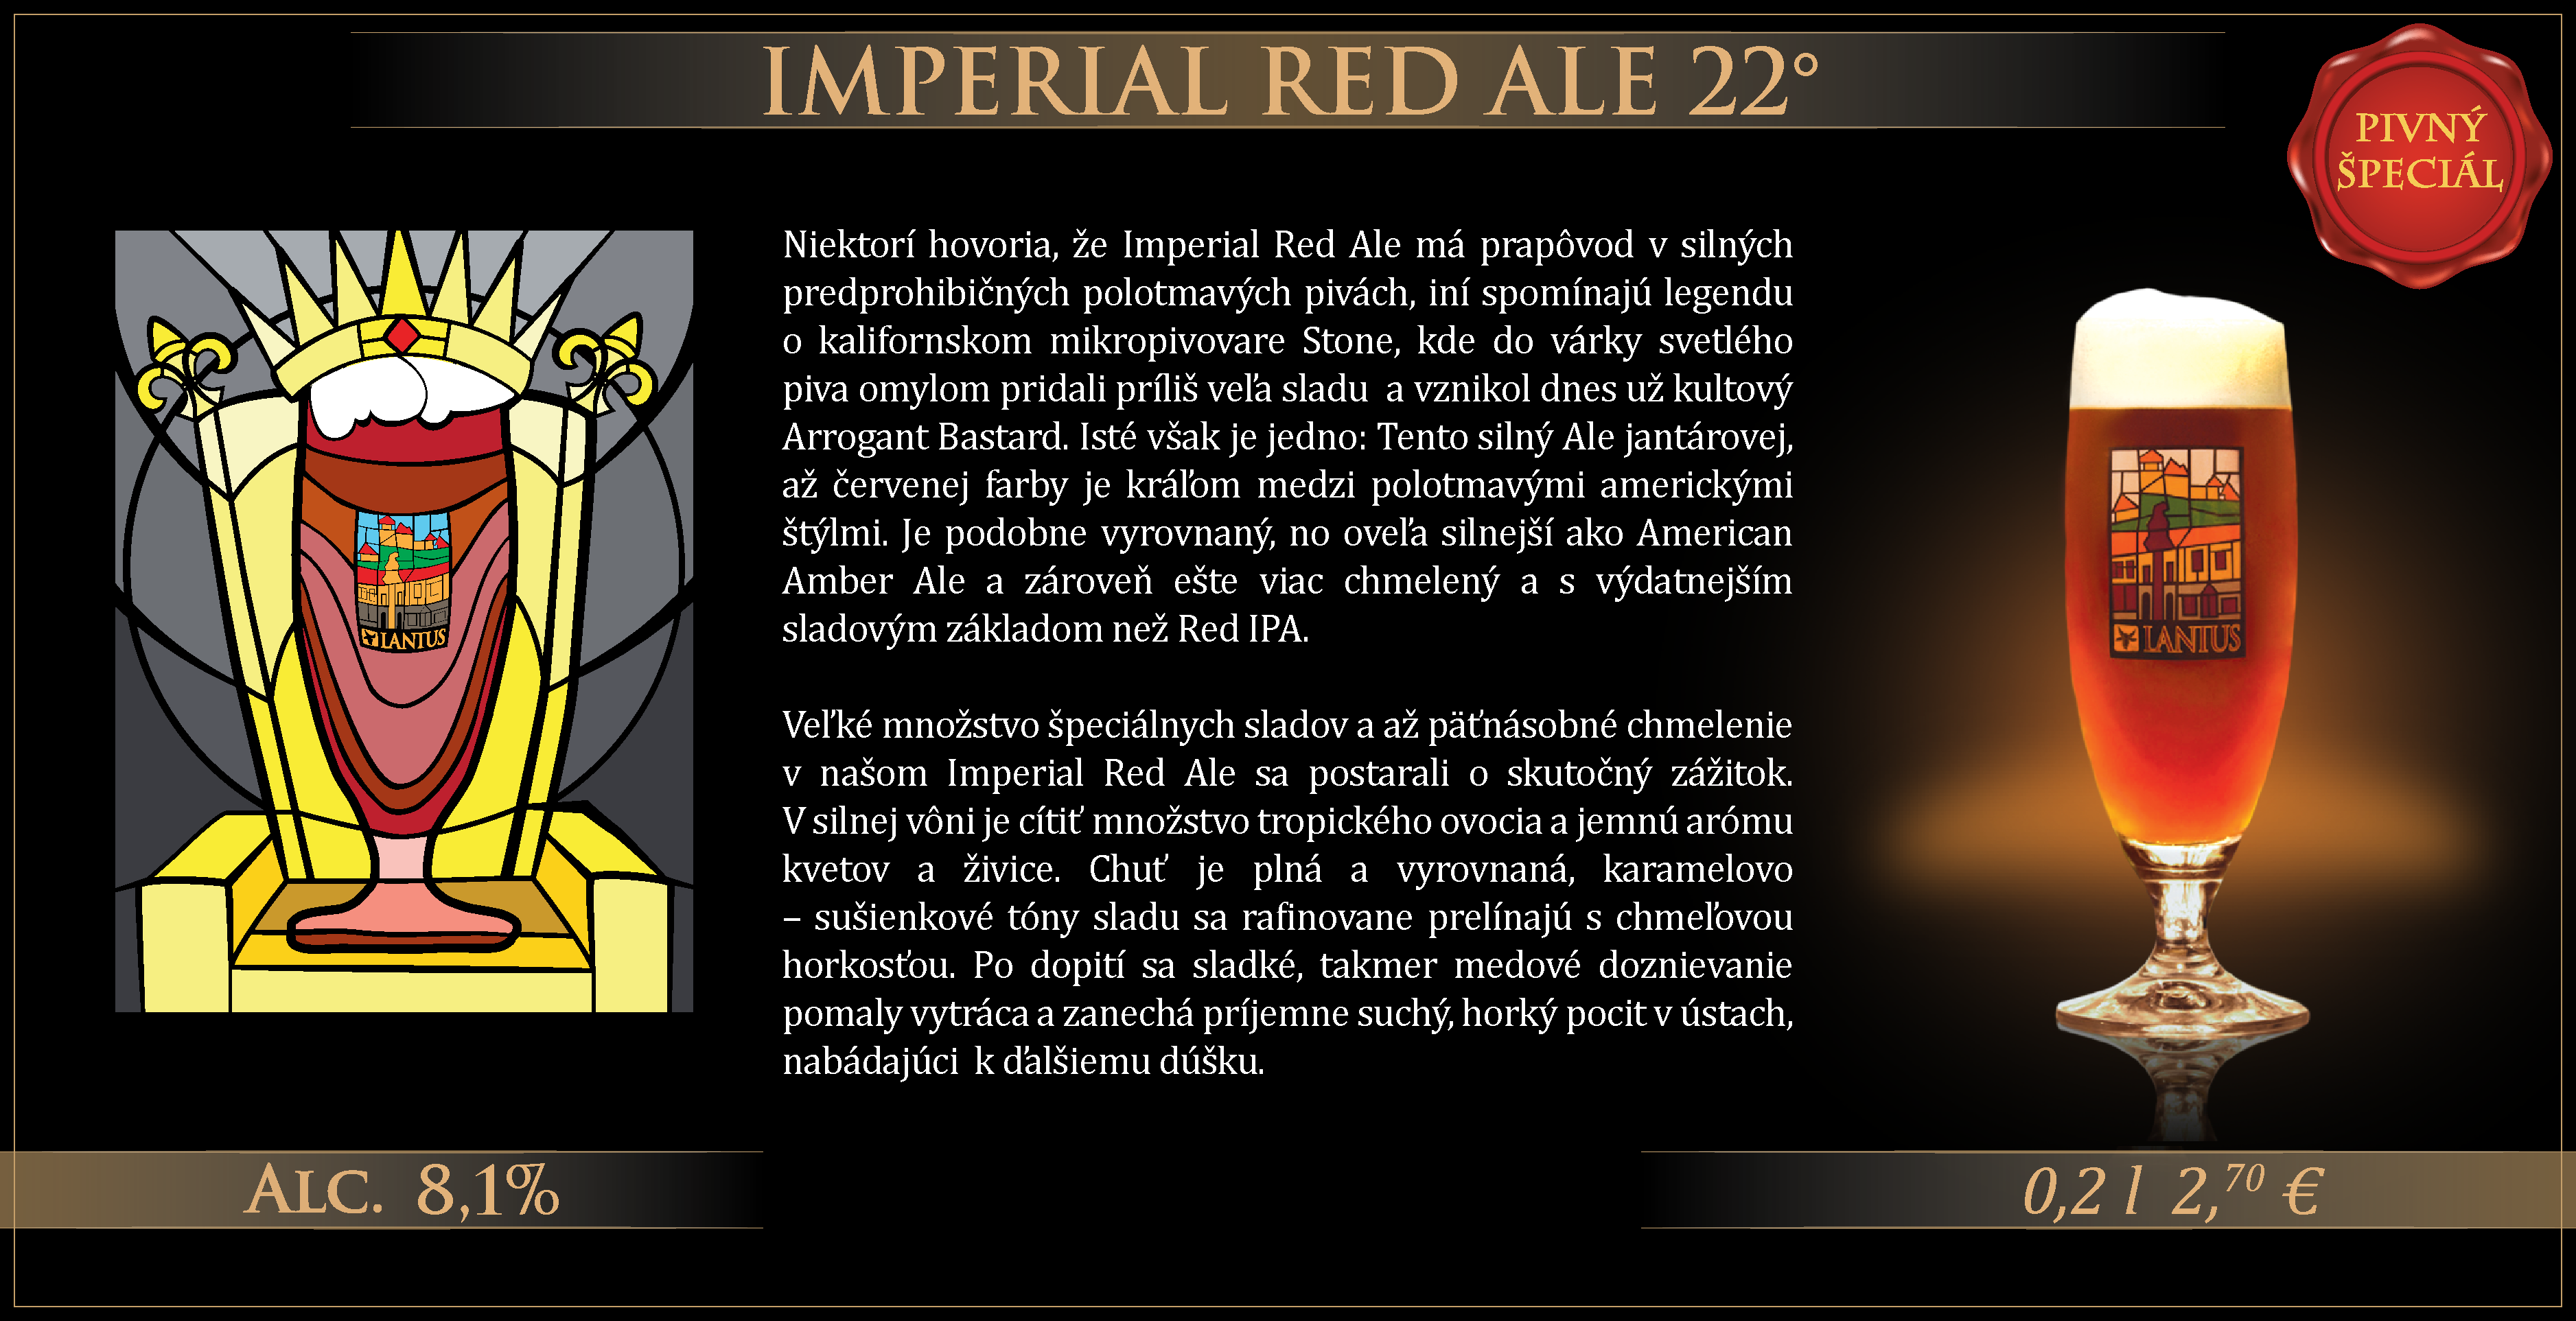 imperial-red-ale-22-web-02